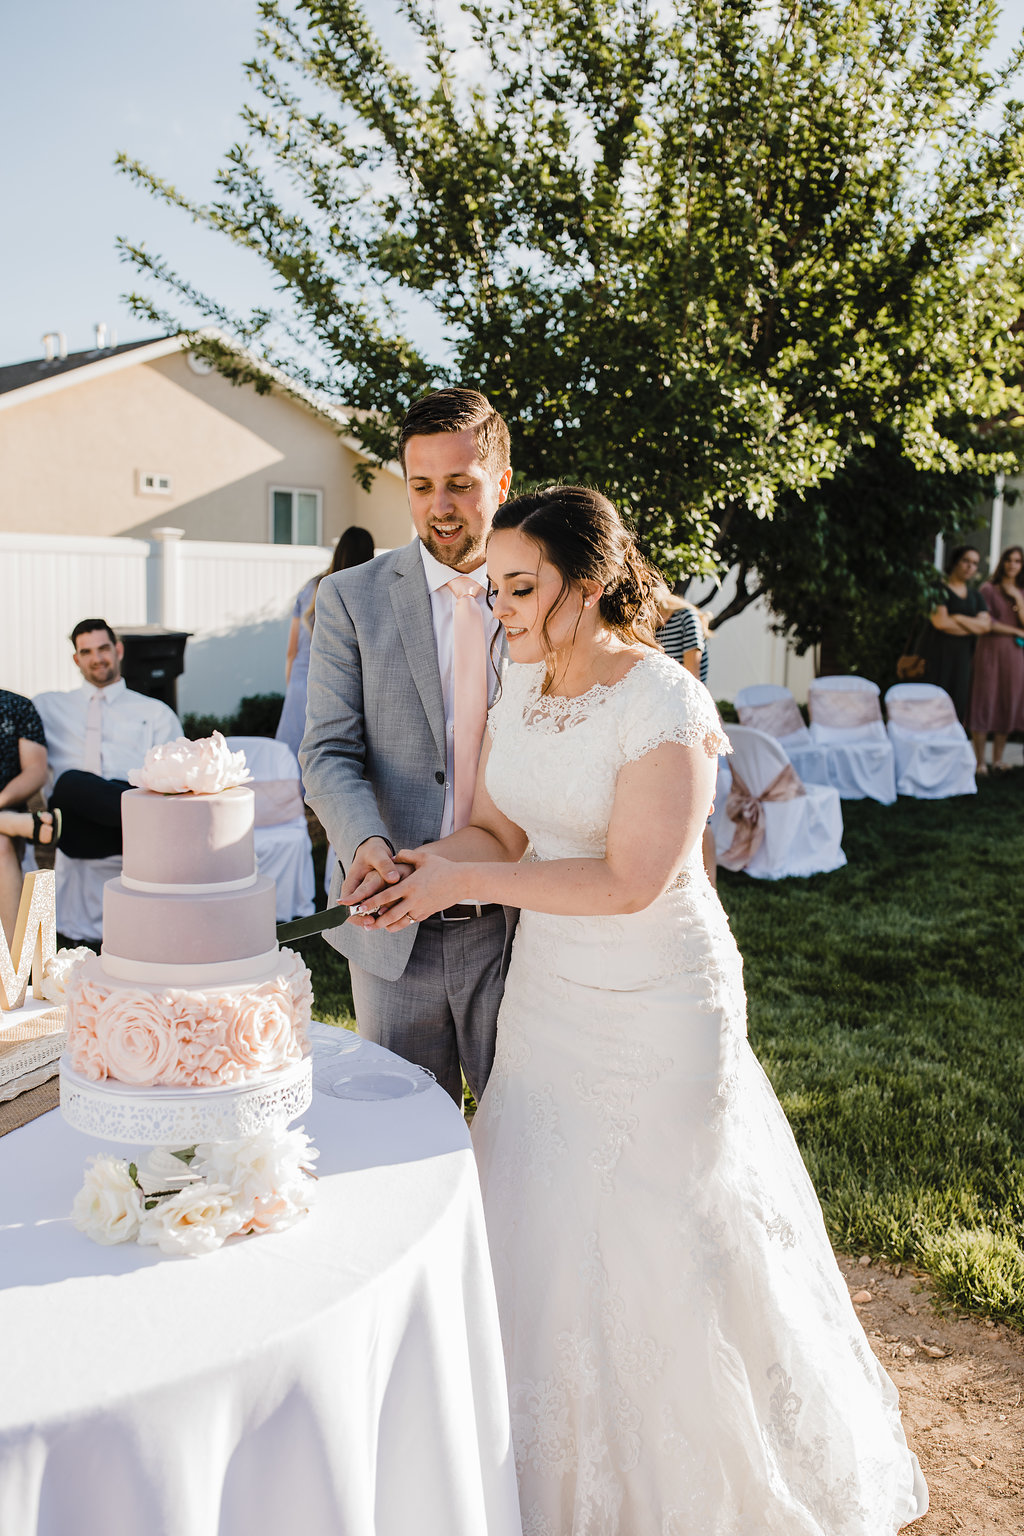 bride and groom cutting the wedding cake lace and roses wedding cake central utah wedding photographer calli richards